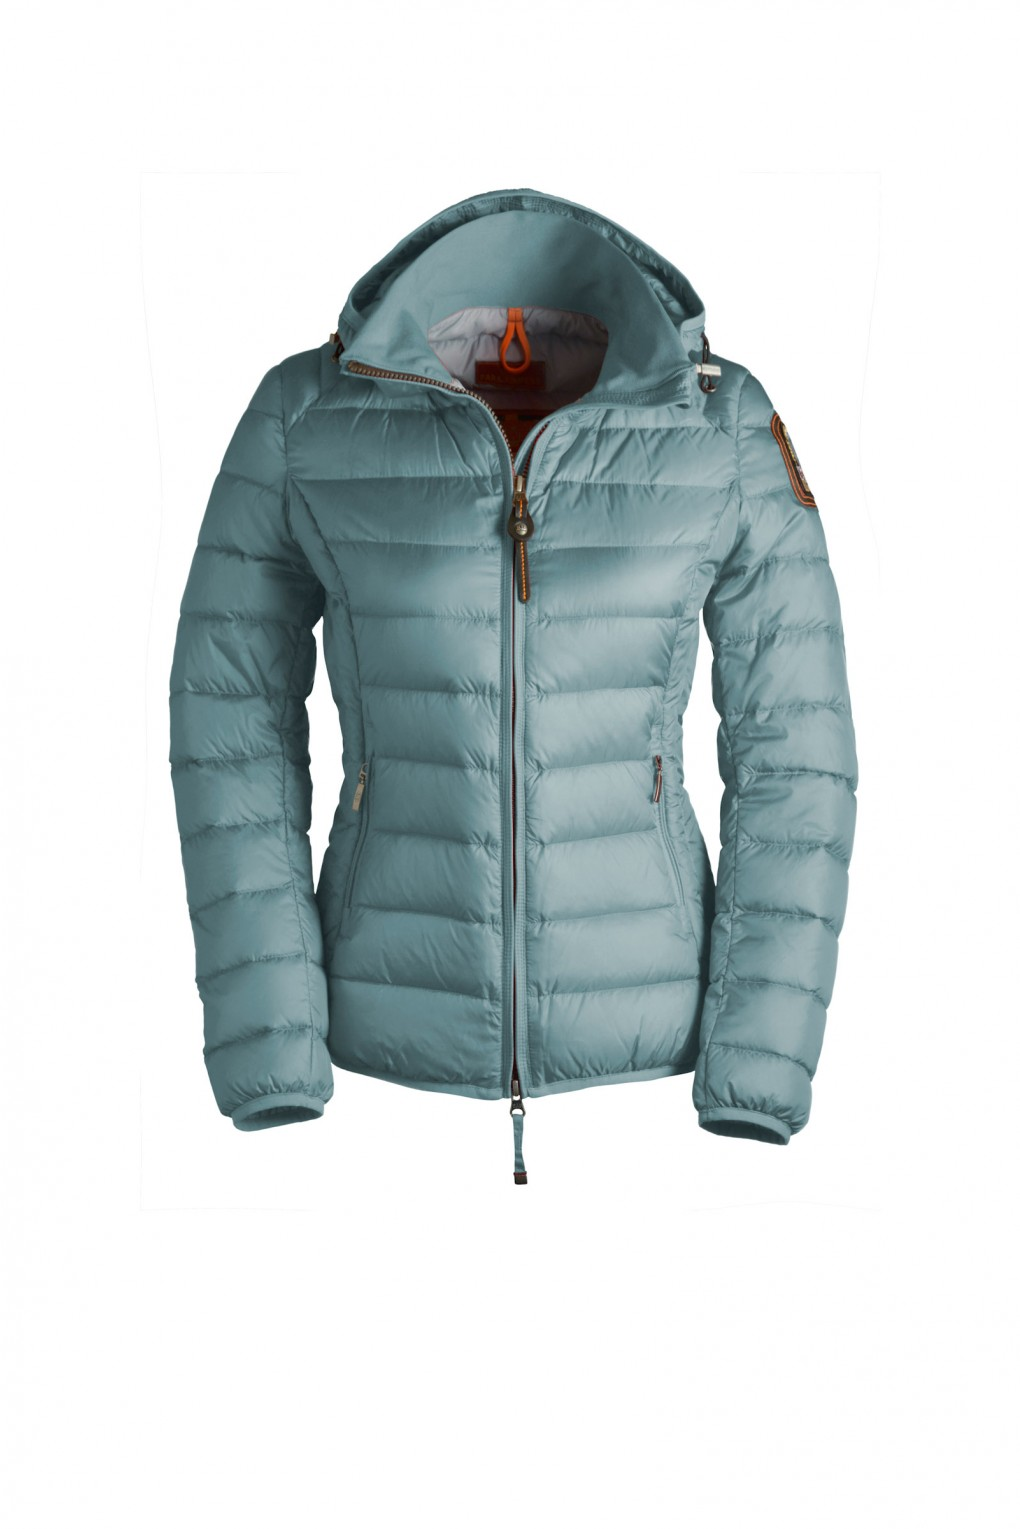 parajumpers JULIET6 woman outerwear Aqua